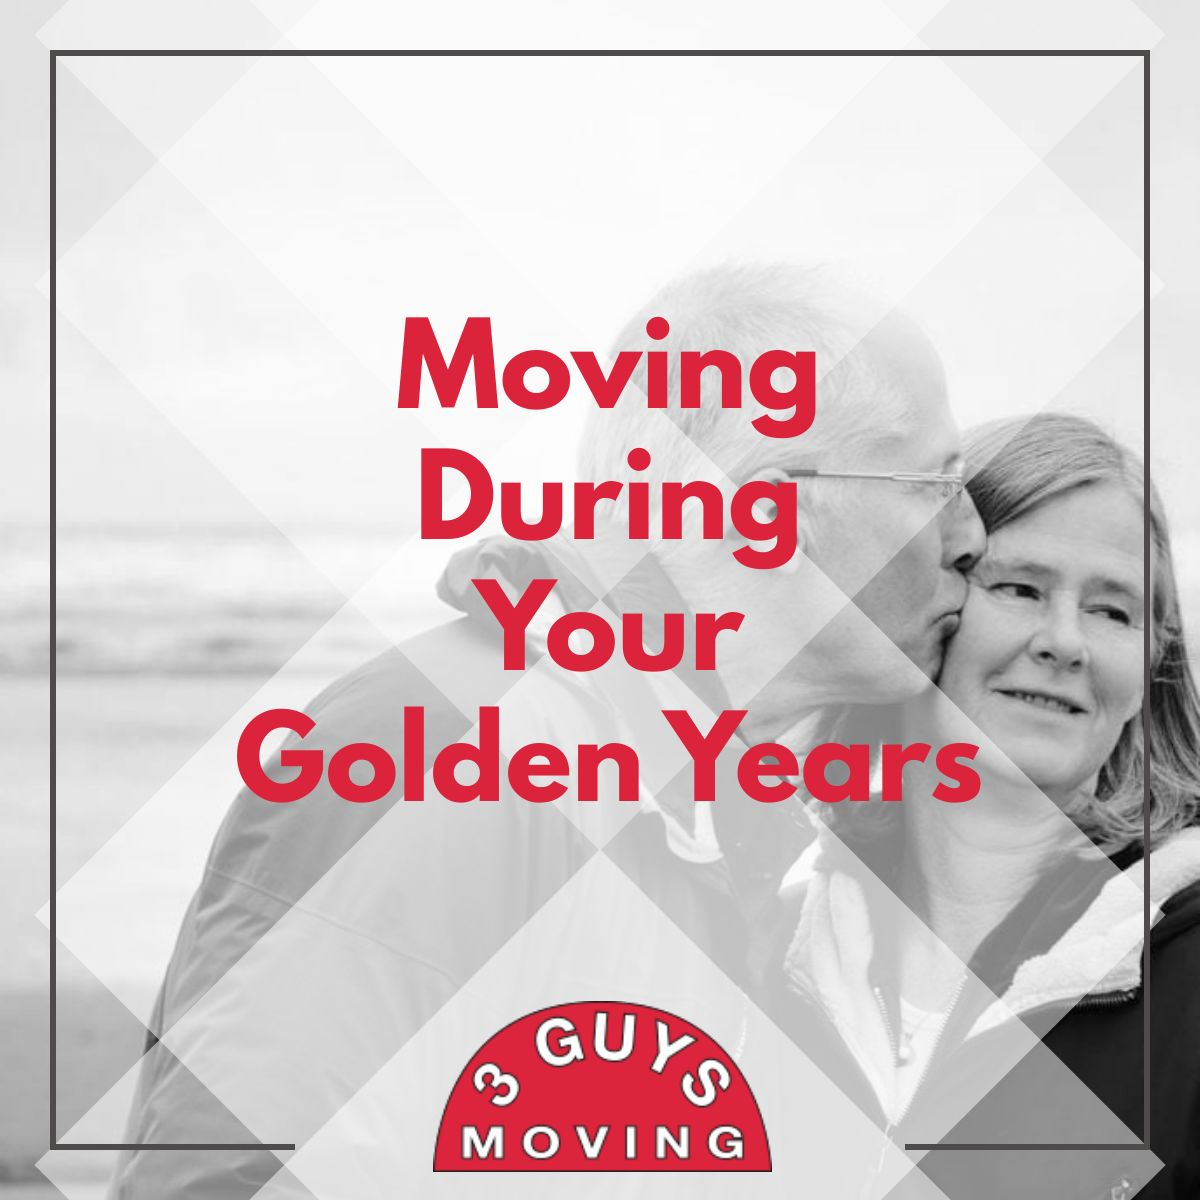 Moving During Your Golden Years - Moving During Your Golden Years